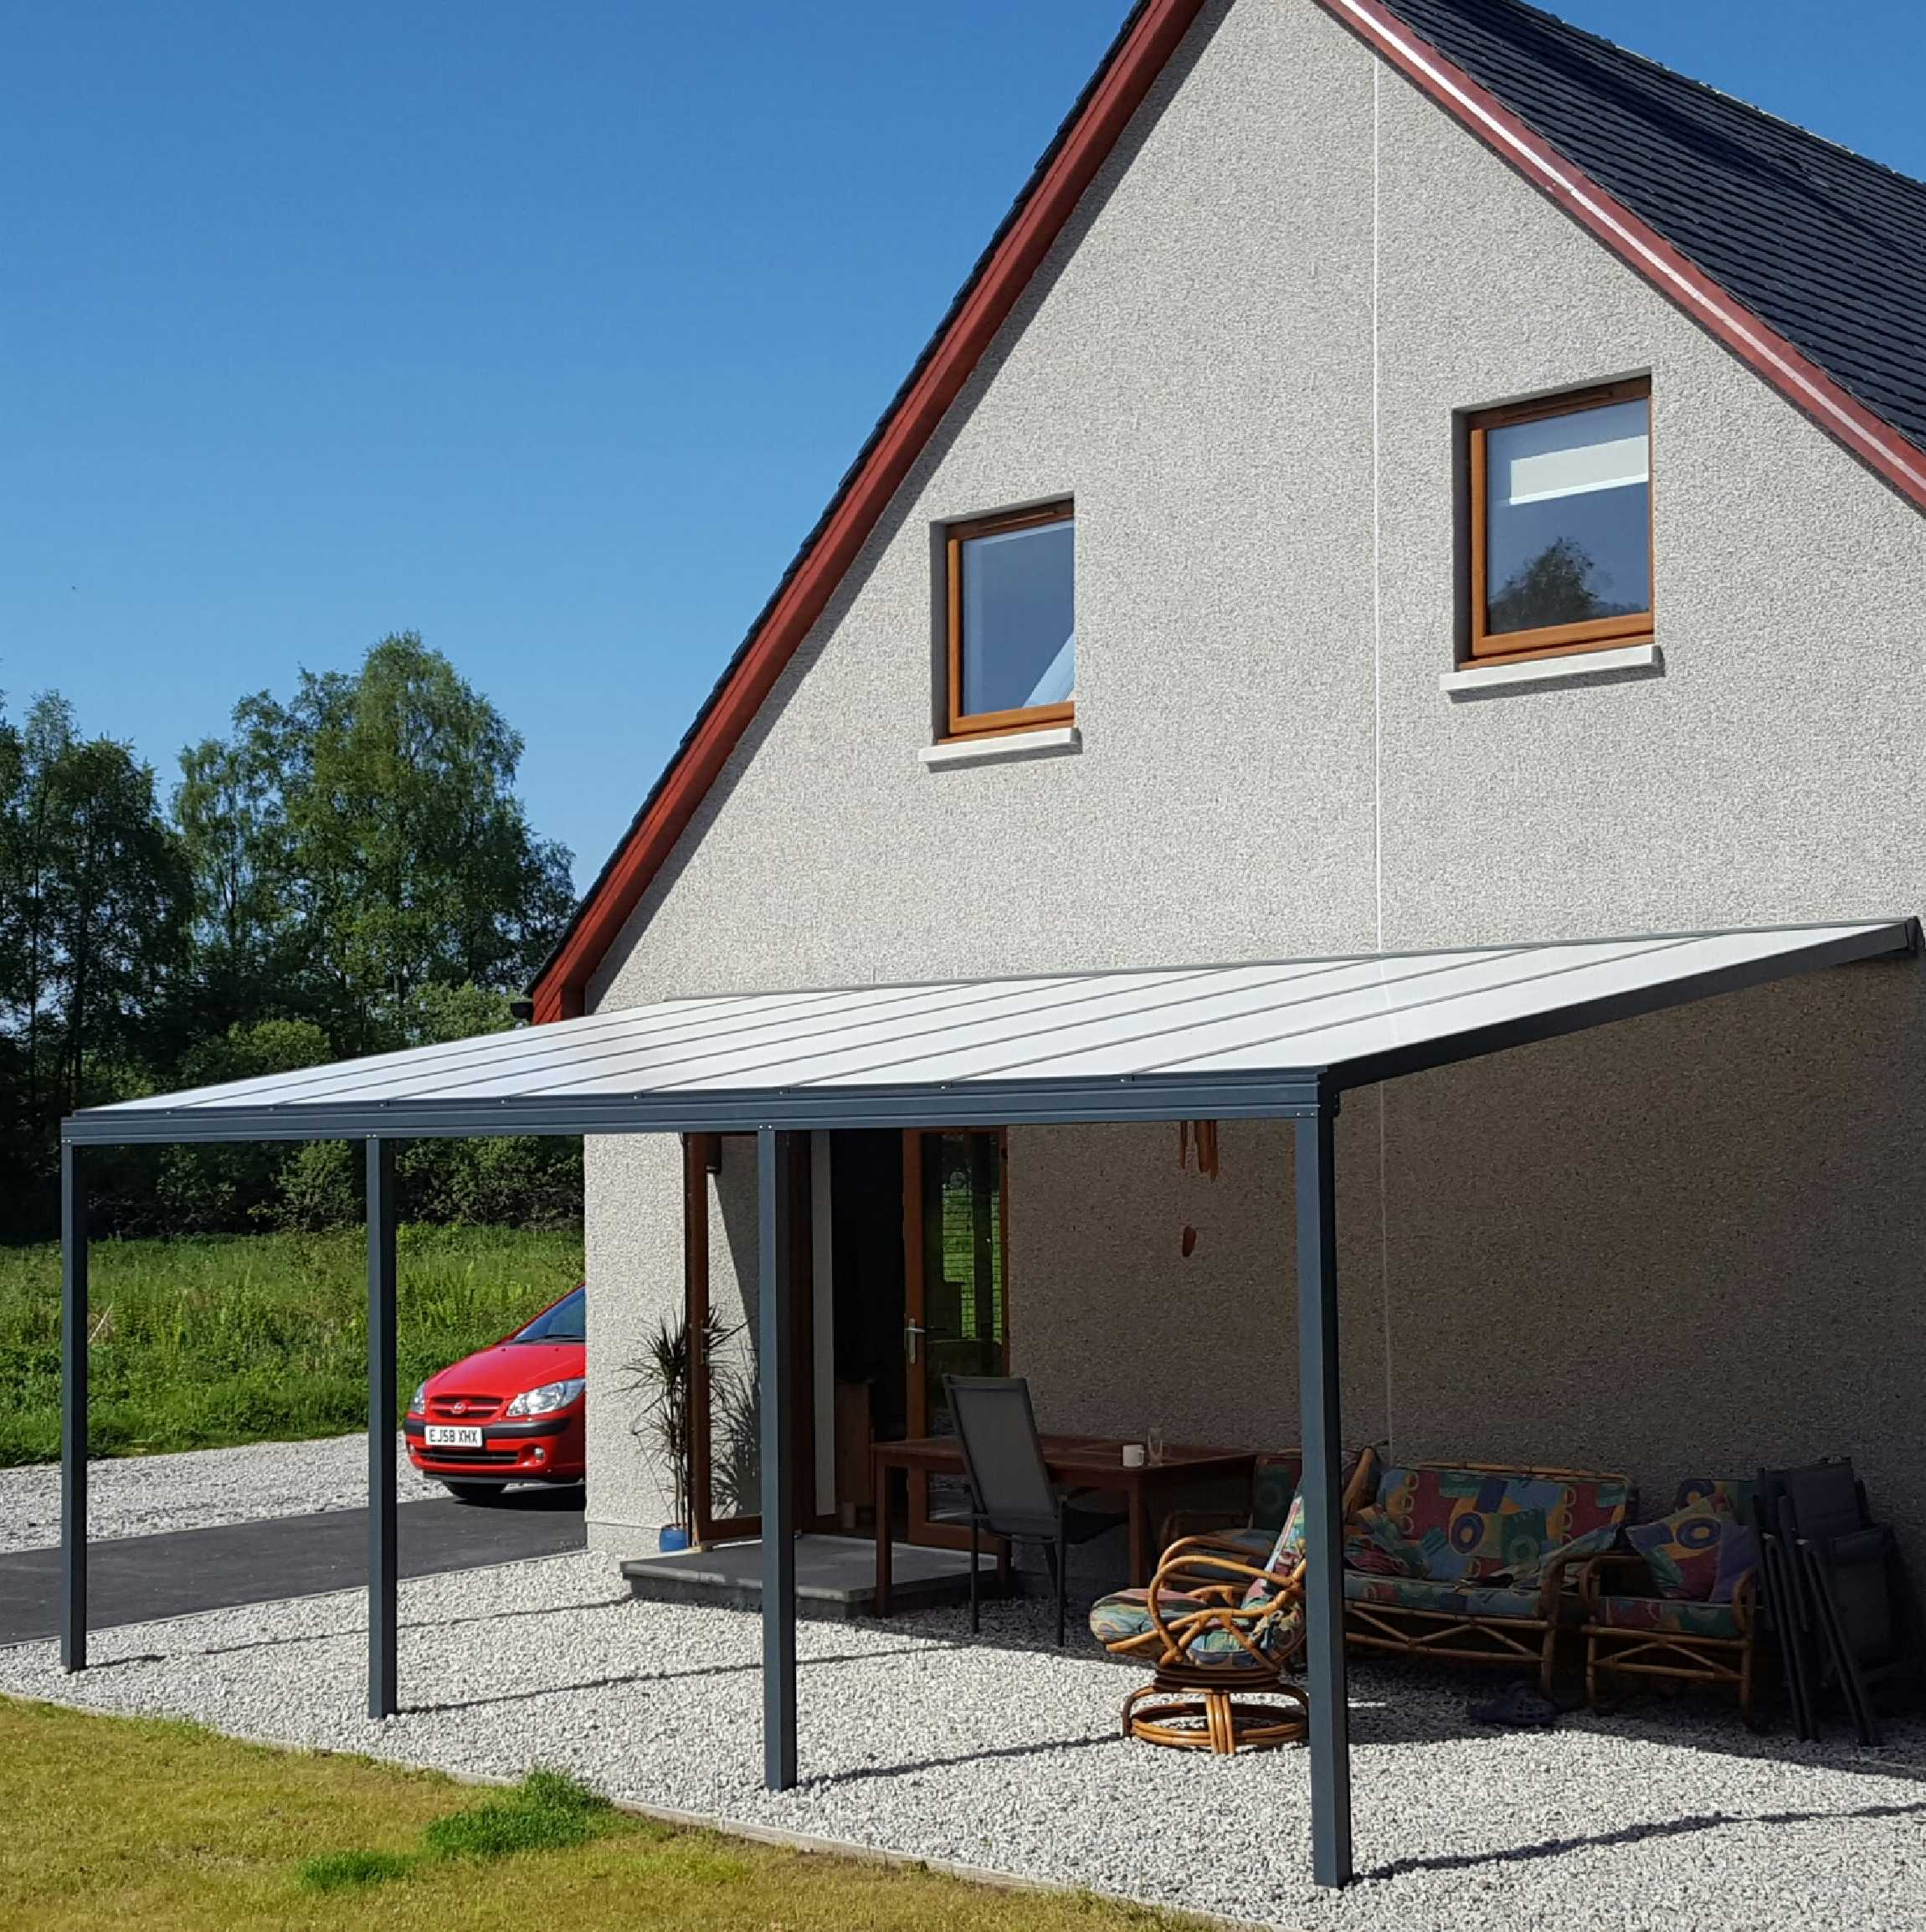 Great selection of Omega Smart Lean-To Canopy, Anthracite Grey, 16mm Polycarbonate Glazing - 3.5m (W) x 3.5m (P), (3) Supporting Posts